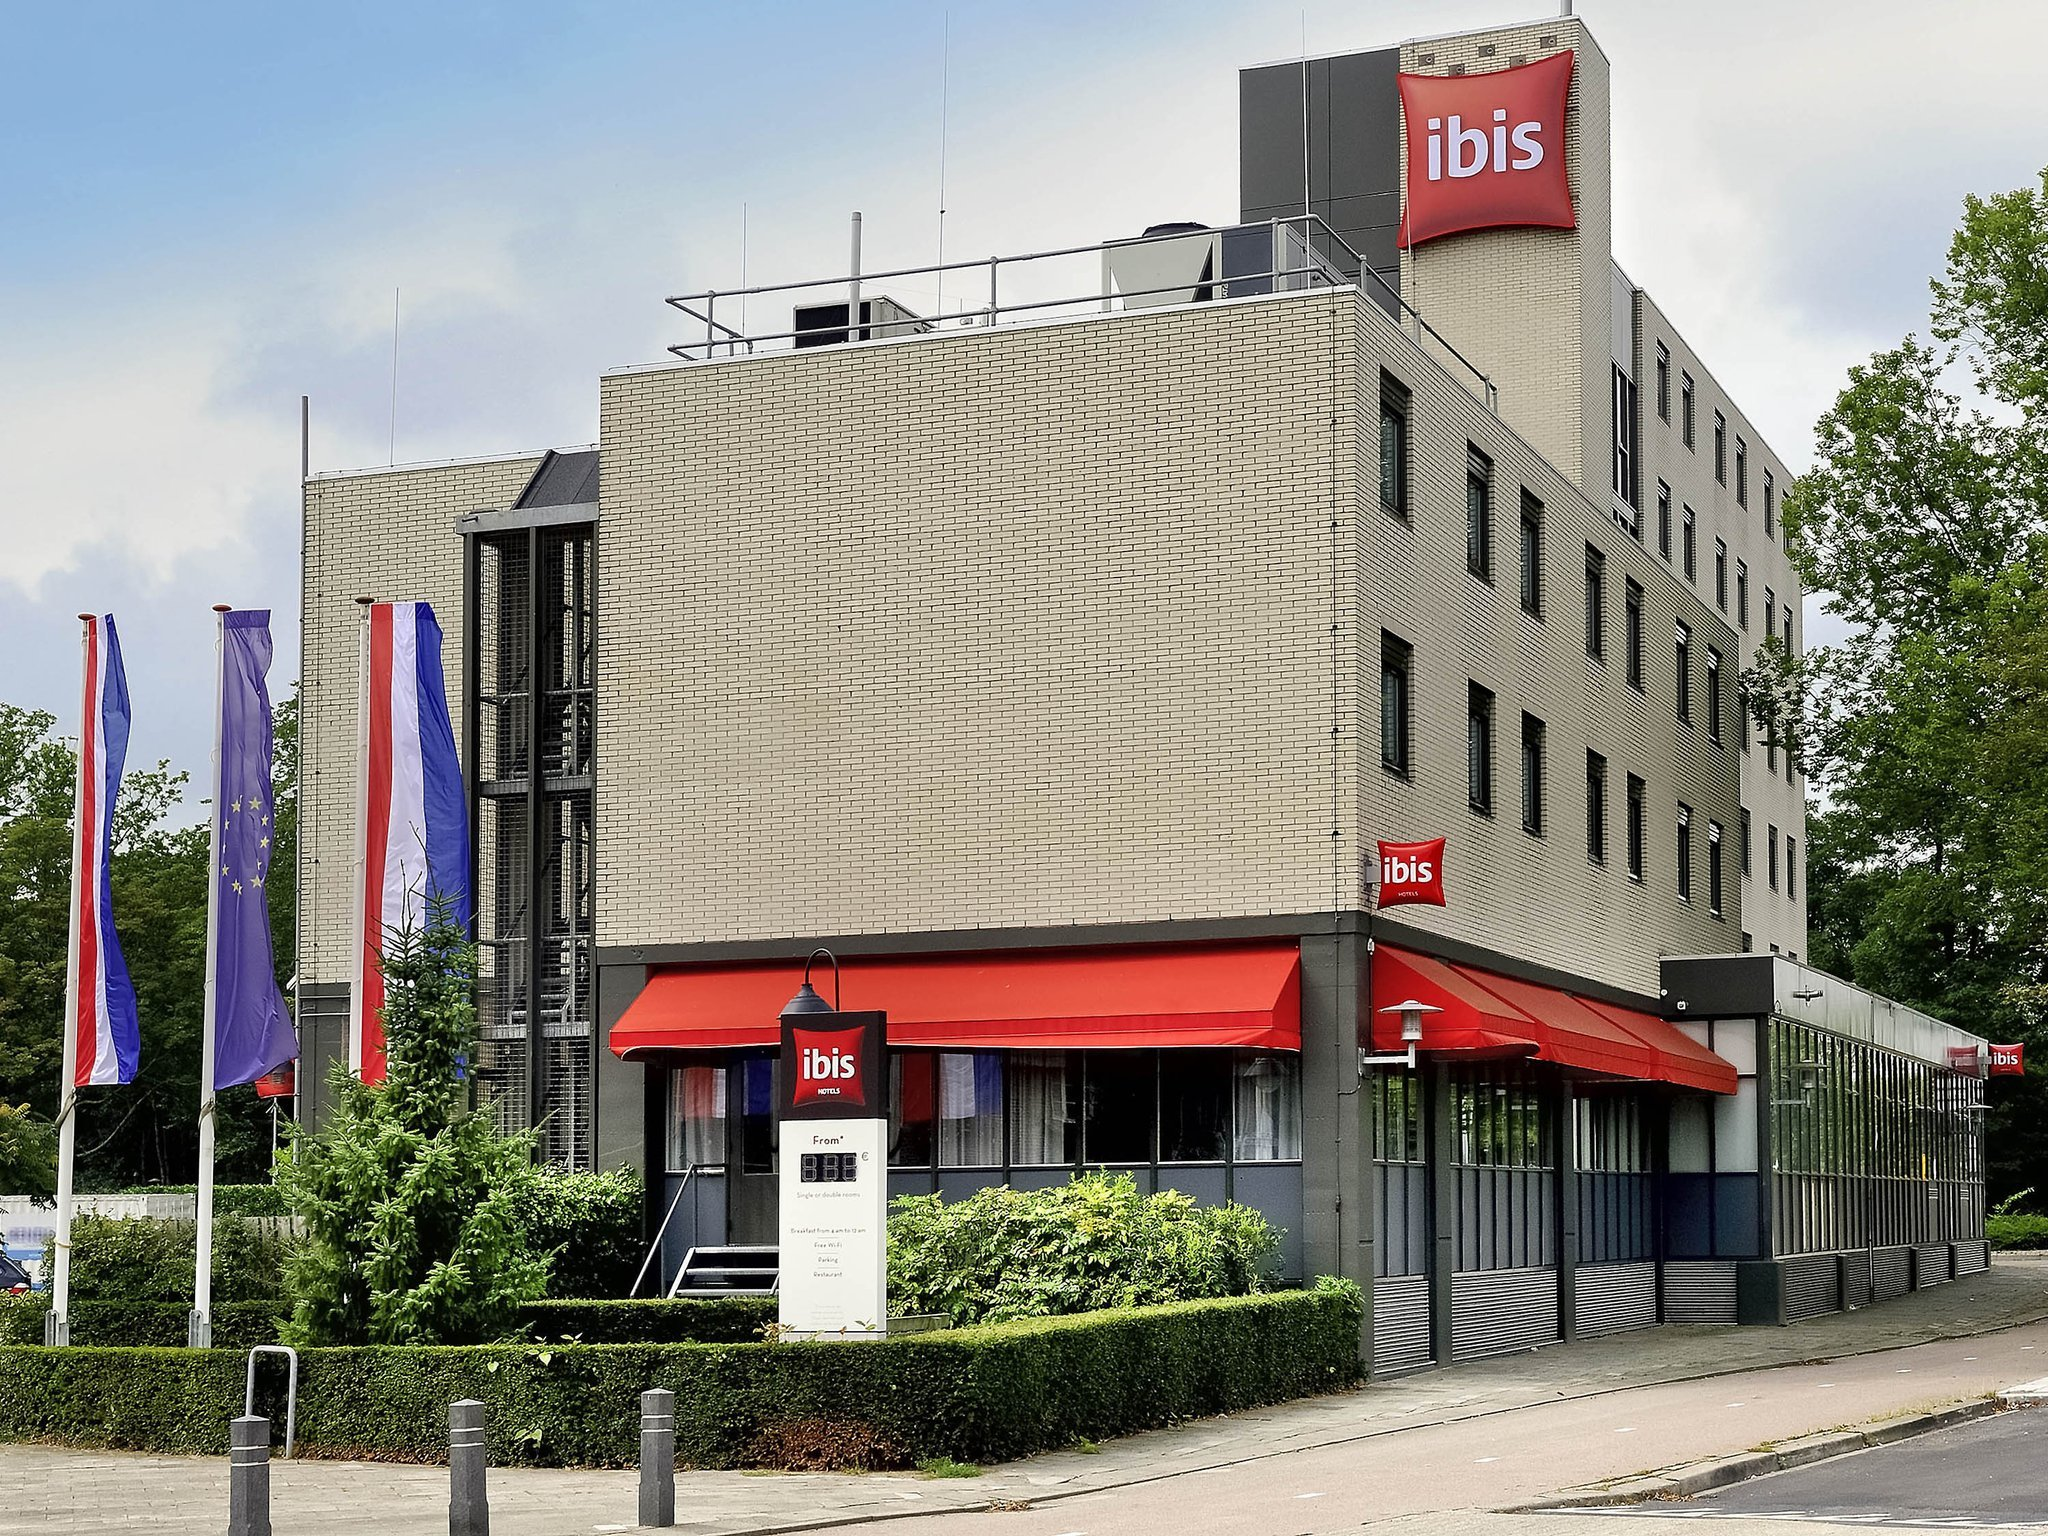 Ibis Utrecht